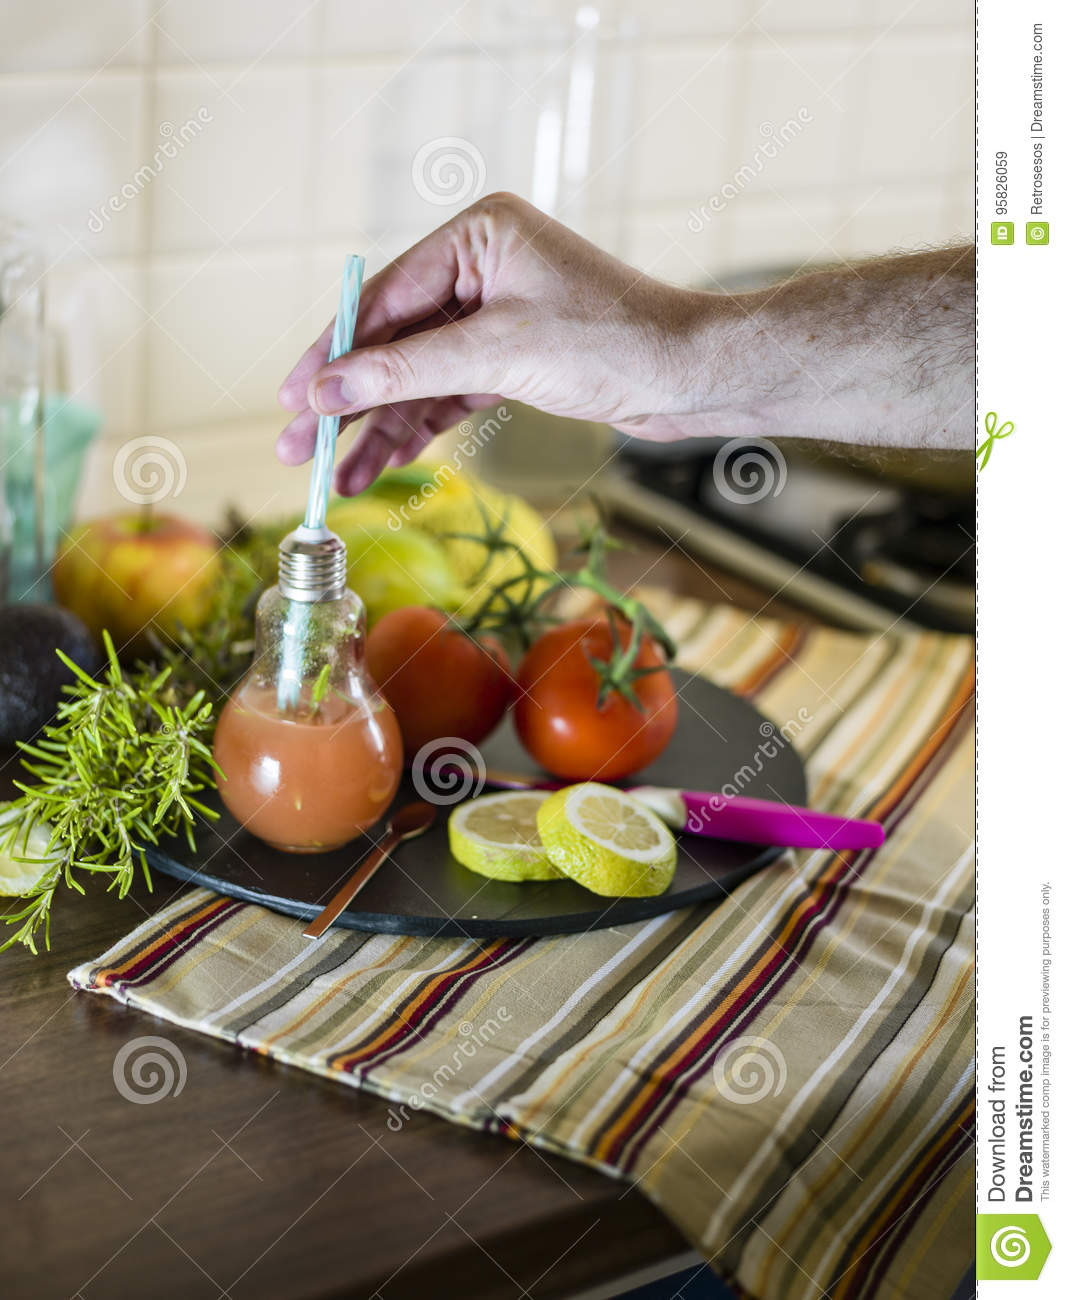 Man Preparing A Cold Cocktail Made Of Fruits And Erbs From A